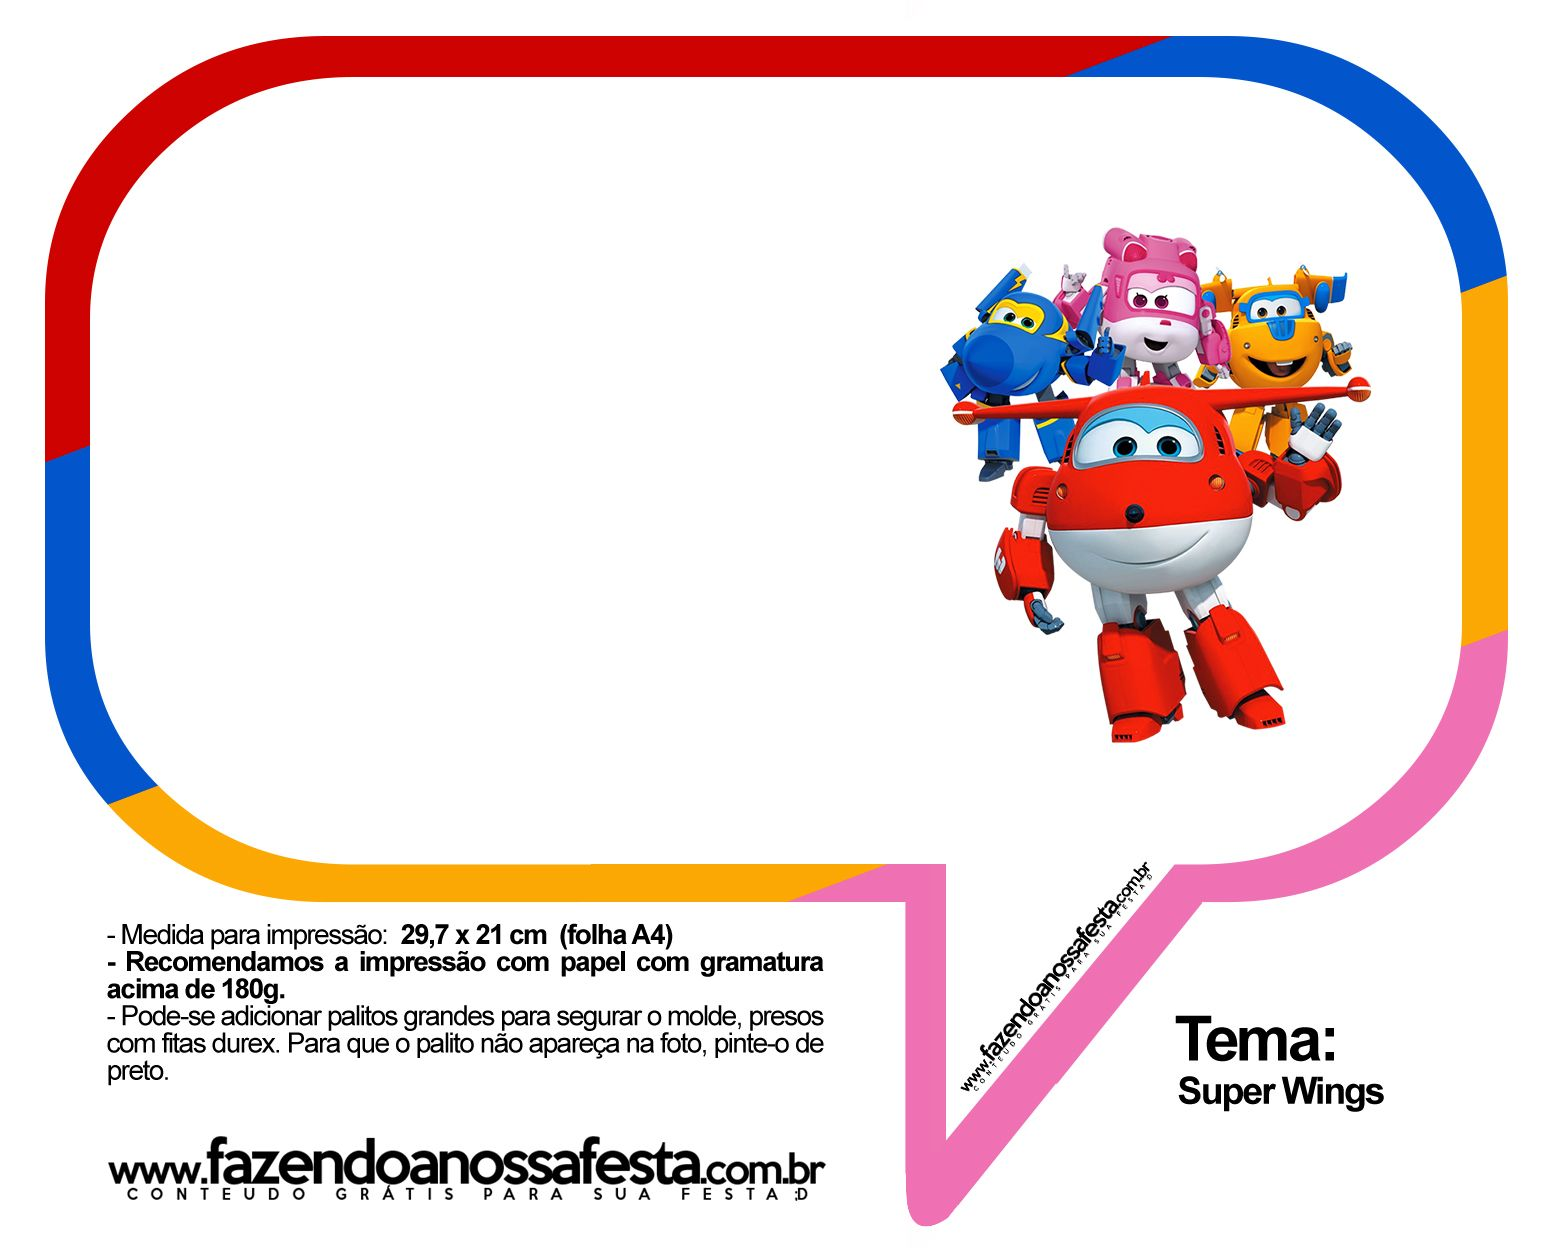 Plaquinhas-Divertidas-Super-Wings-37.jpg 1.563×1.248 piksel